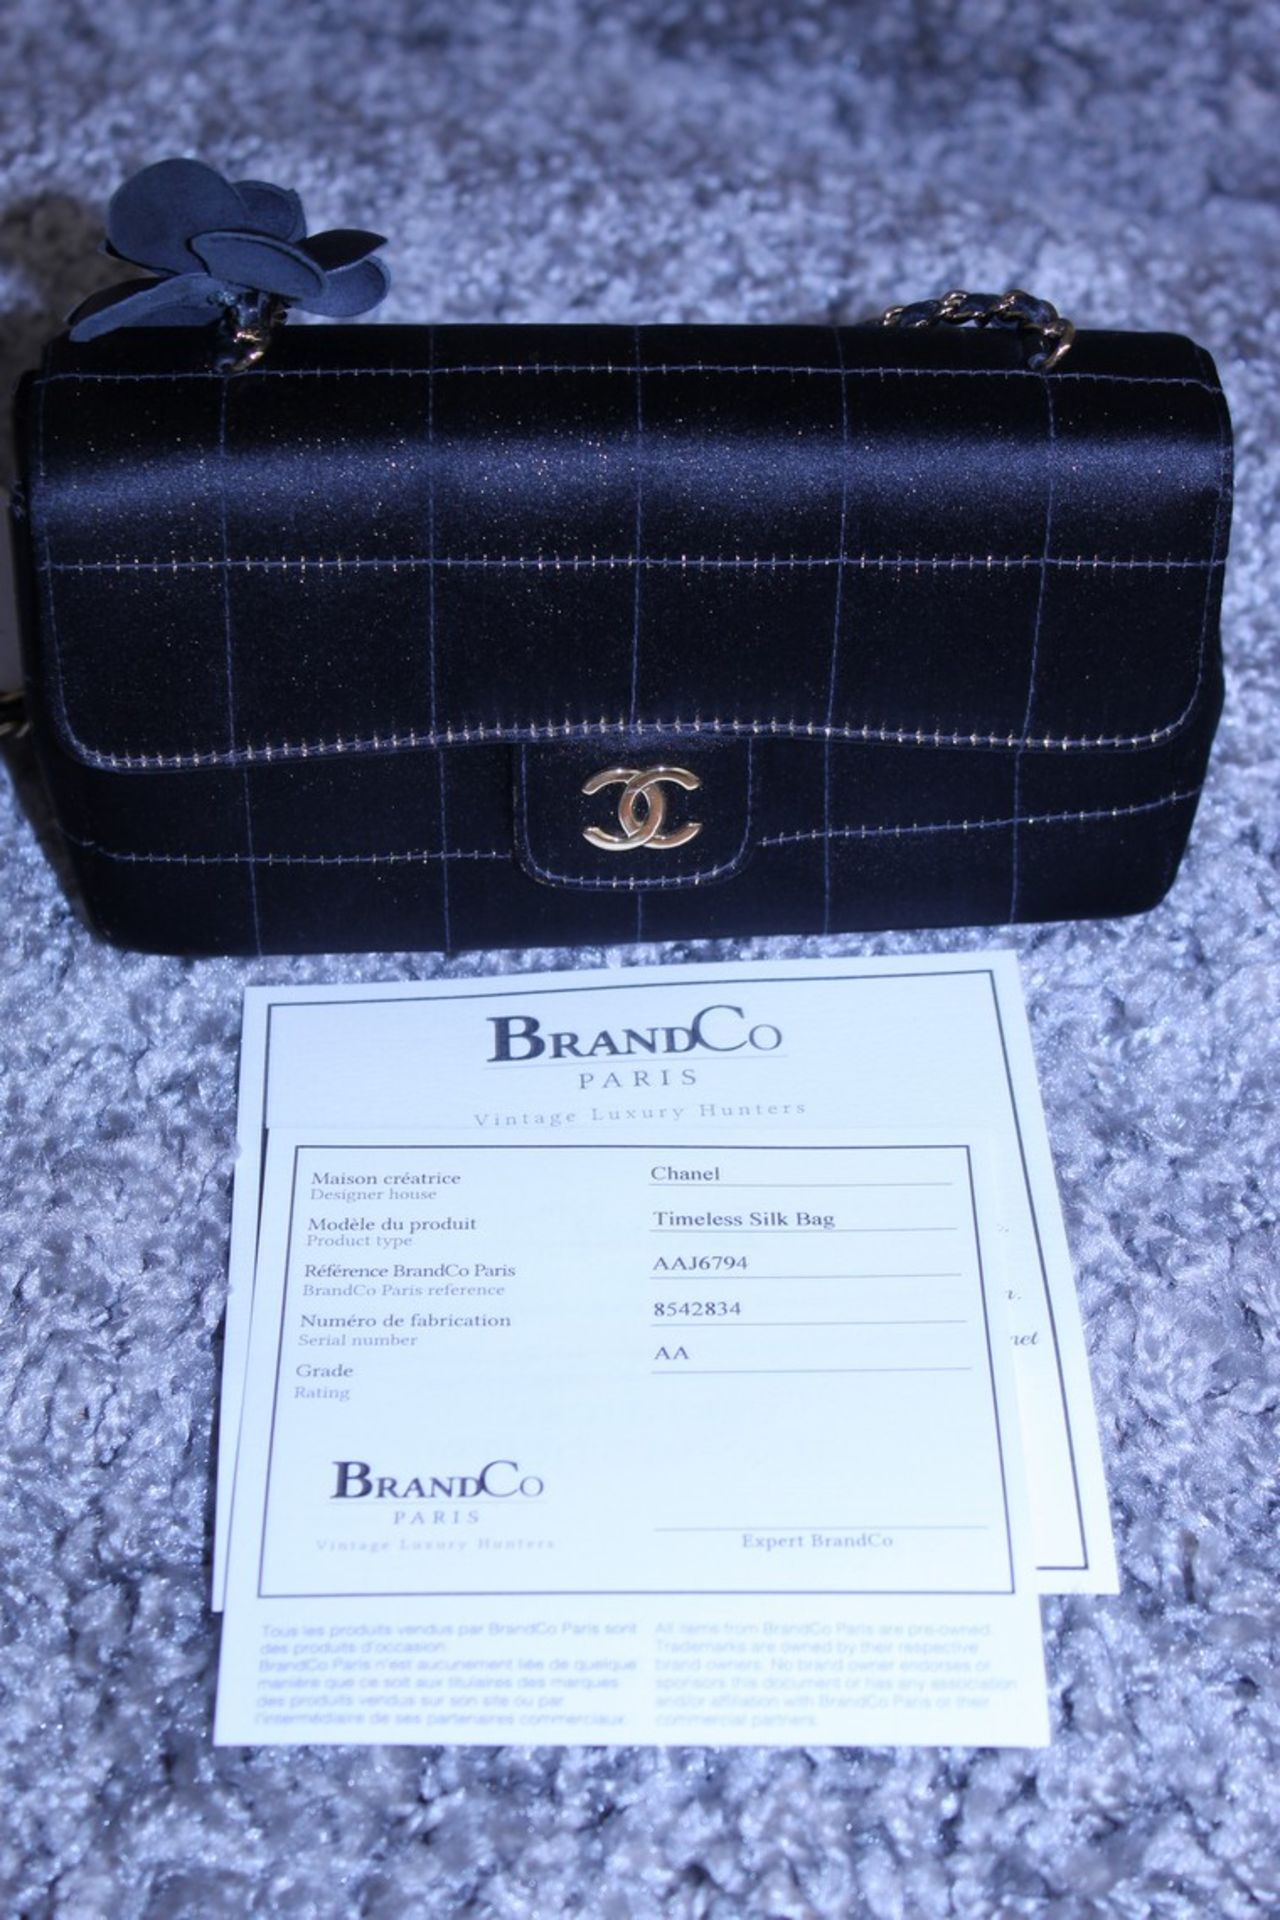 RRP £3,500 Chanel Timess Silk Bag, Black Canvas Square Quilted, Gold Chain Handles (Production - Image 4 of 4